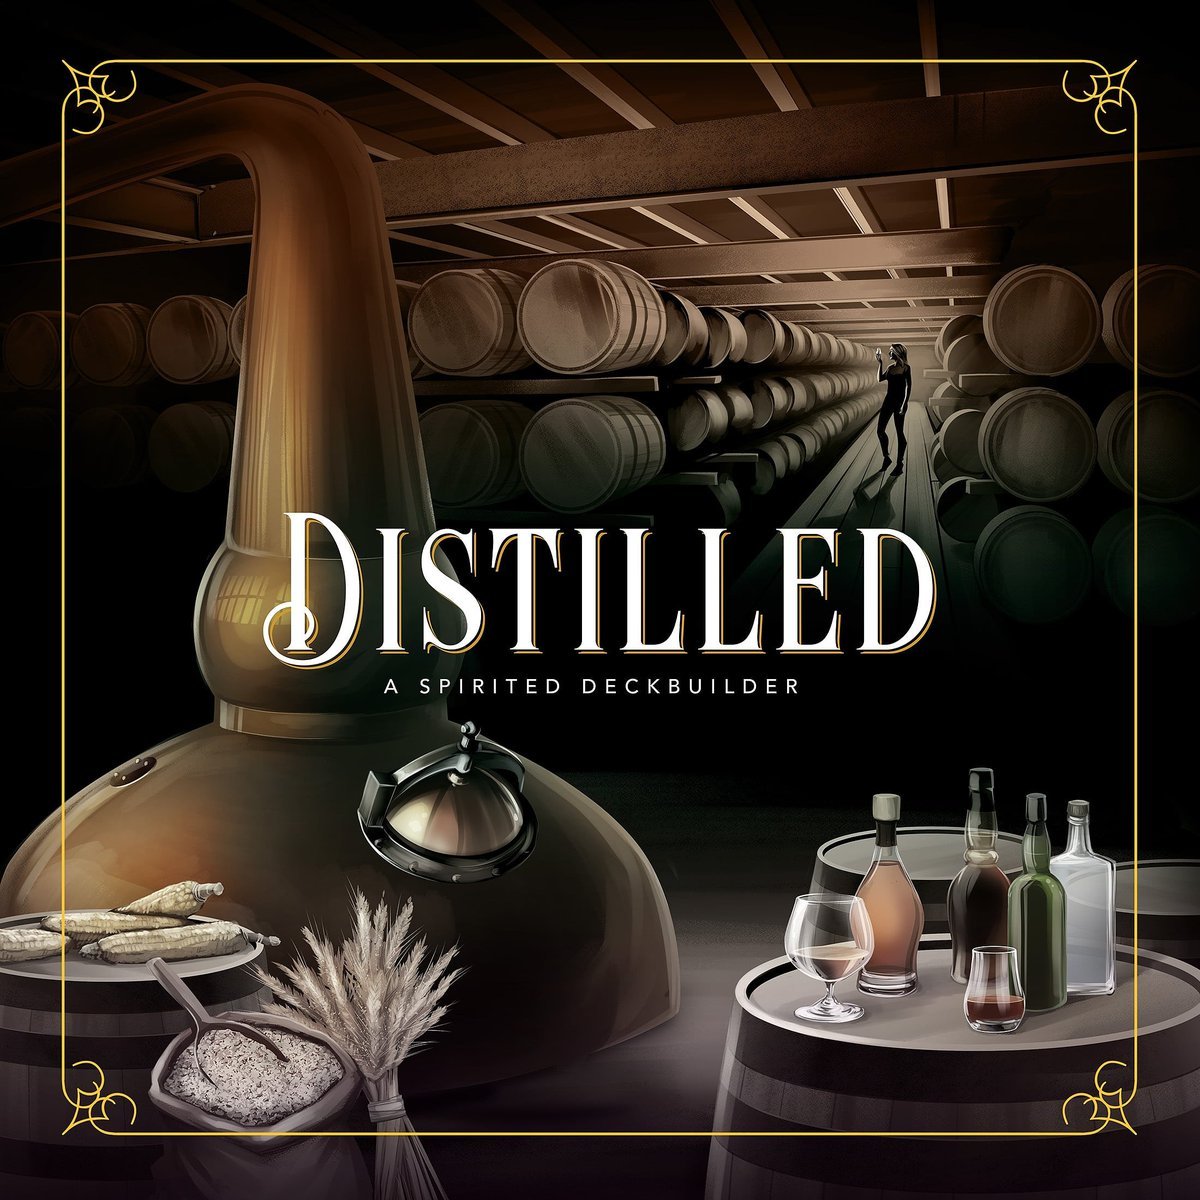 1st peek at @eevensen's #boxart for @distilled_game! What do U think? #distilled #boardgames #bgg #boardgamegeek #boardgame #tabletop #boardgameaddict #tabletopgamer #tabletopgames #tabletopgaming #geek #coverart #gameart #illustration #scotch #whisky #bourbon #distillerypic.twitter.com/oPp4BHxcYH